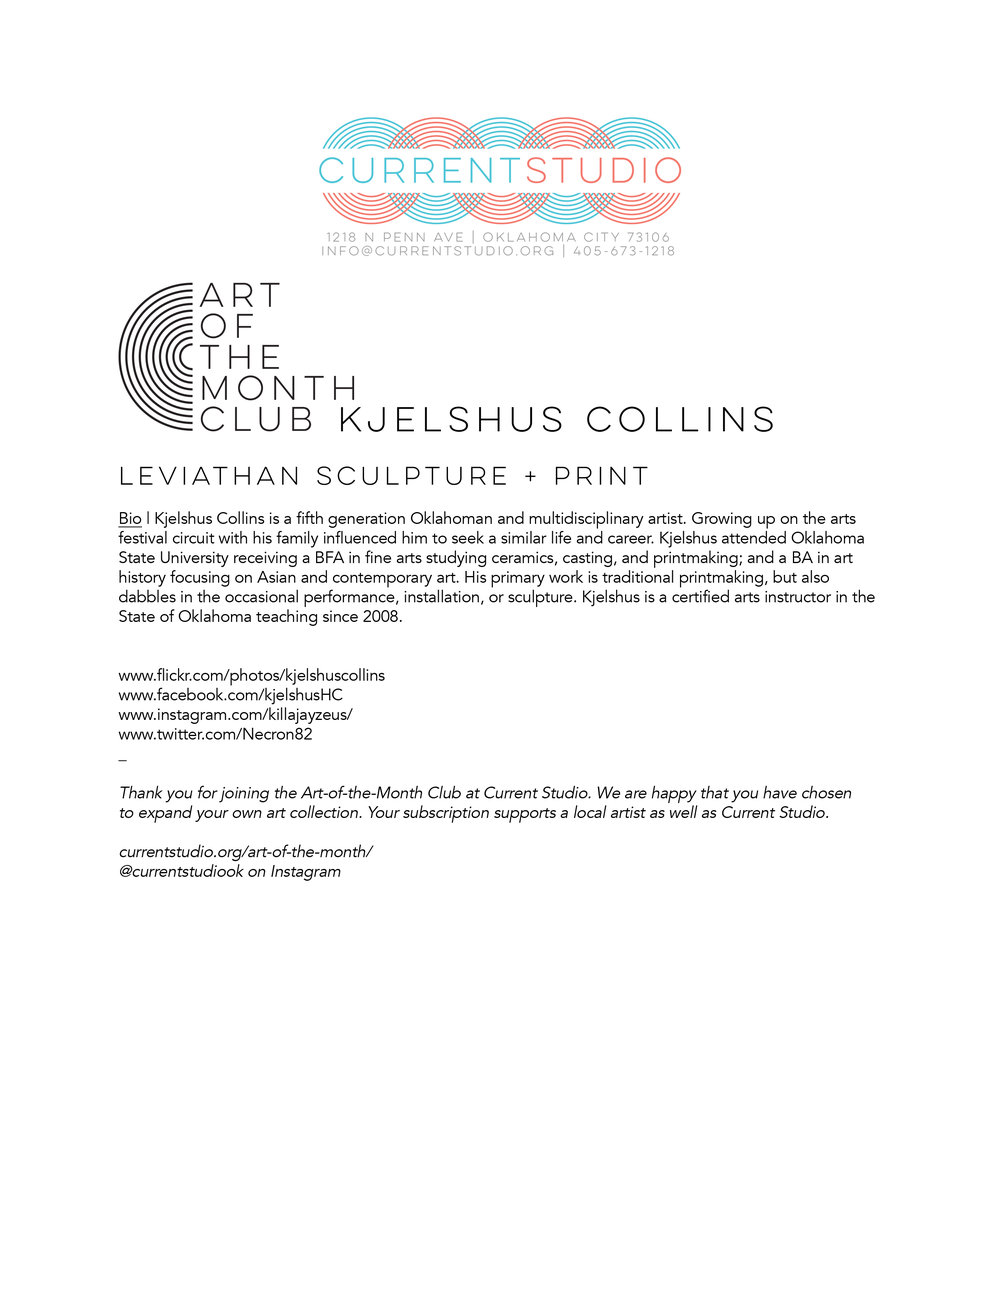 art of the month artist sheet - kj collins.jpg